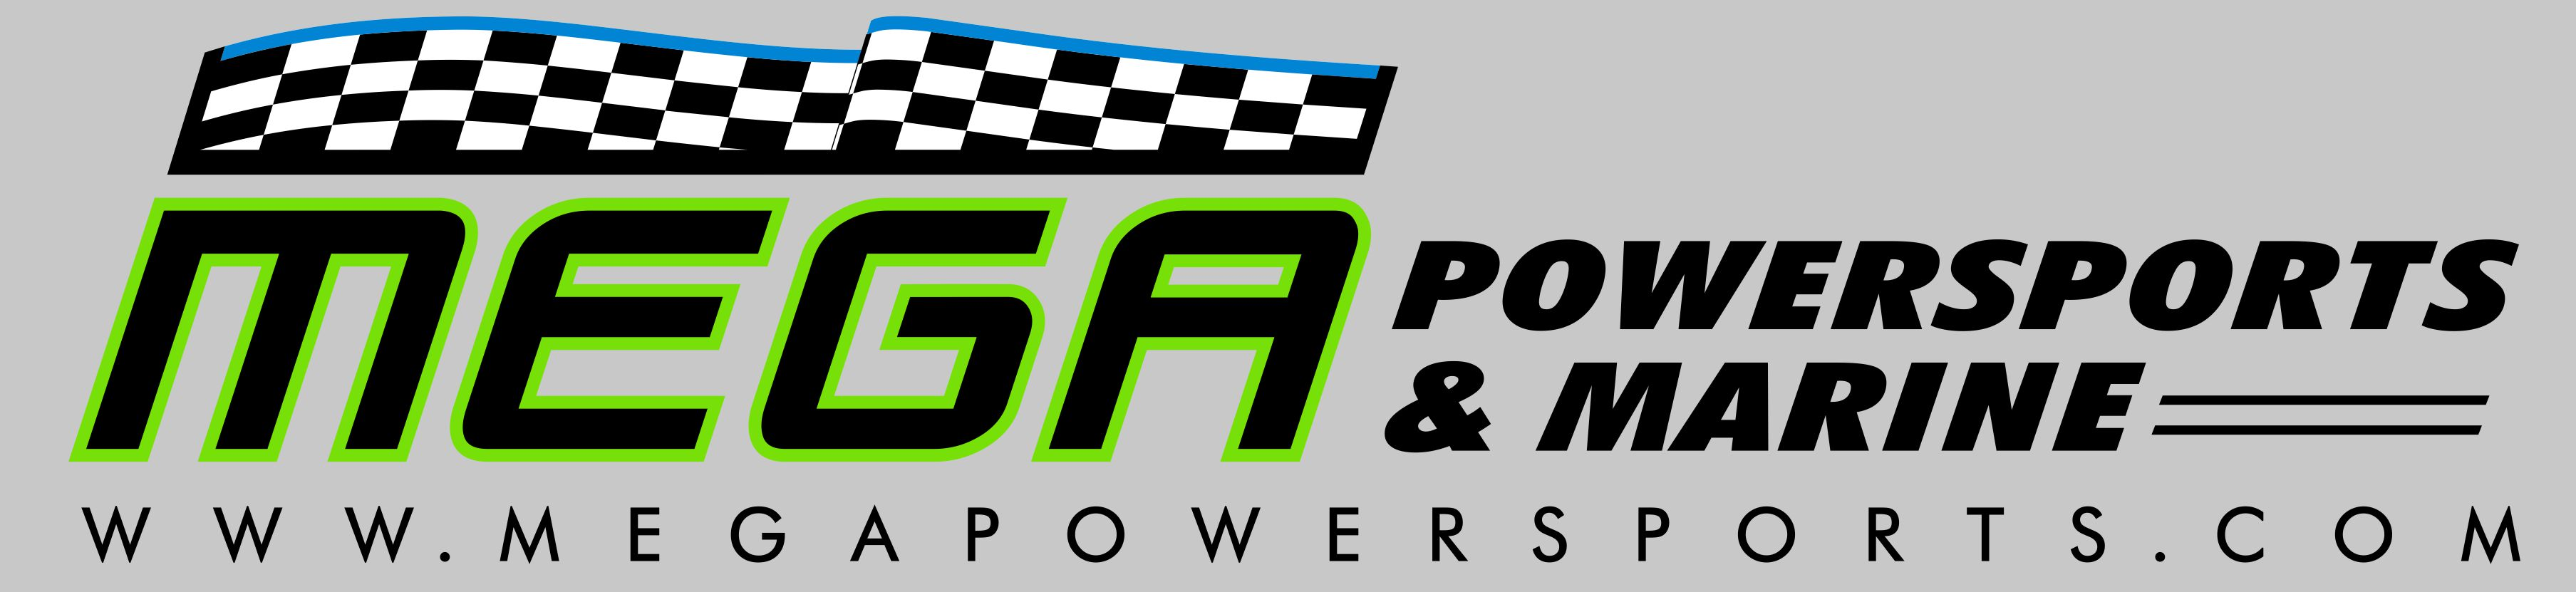 Mega Power Sports